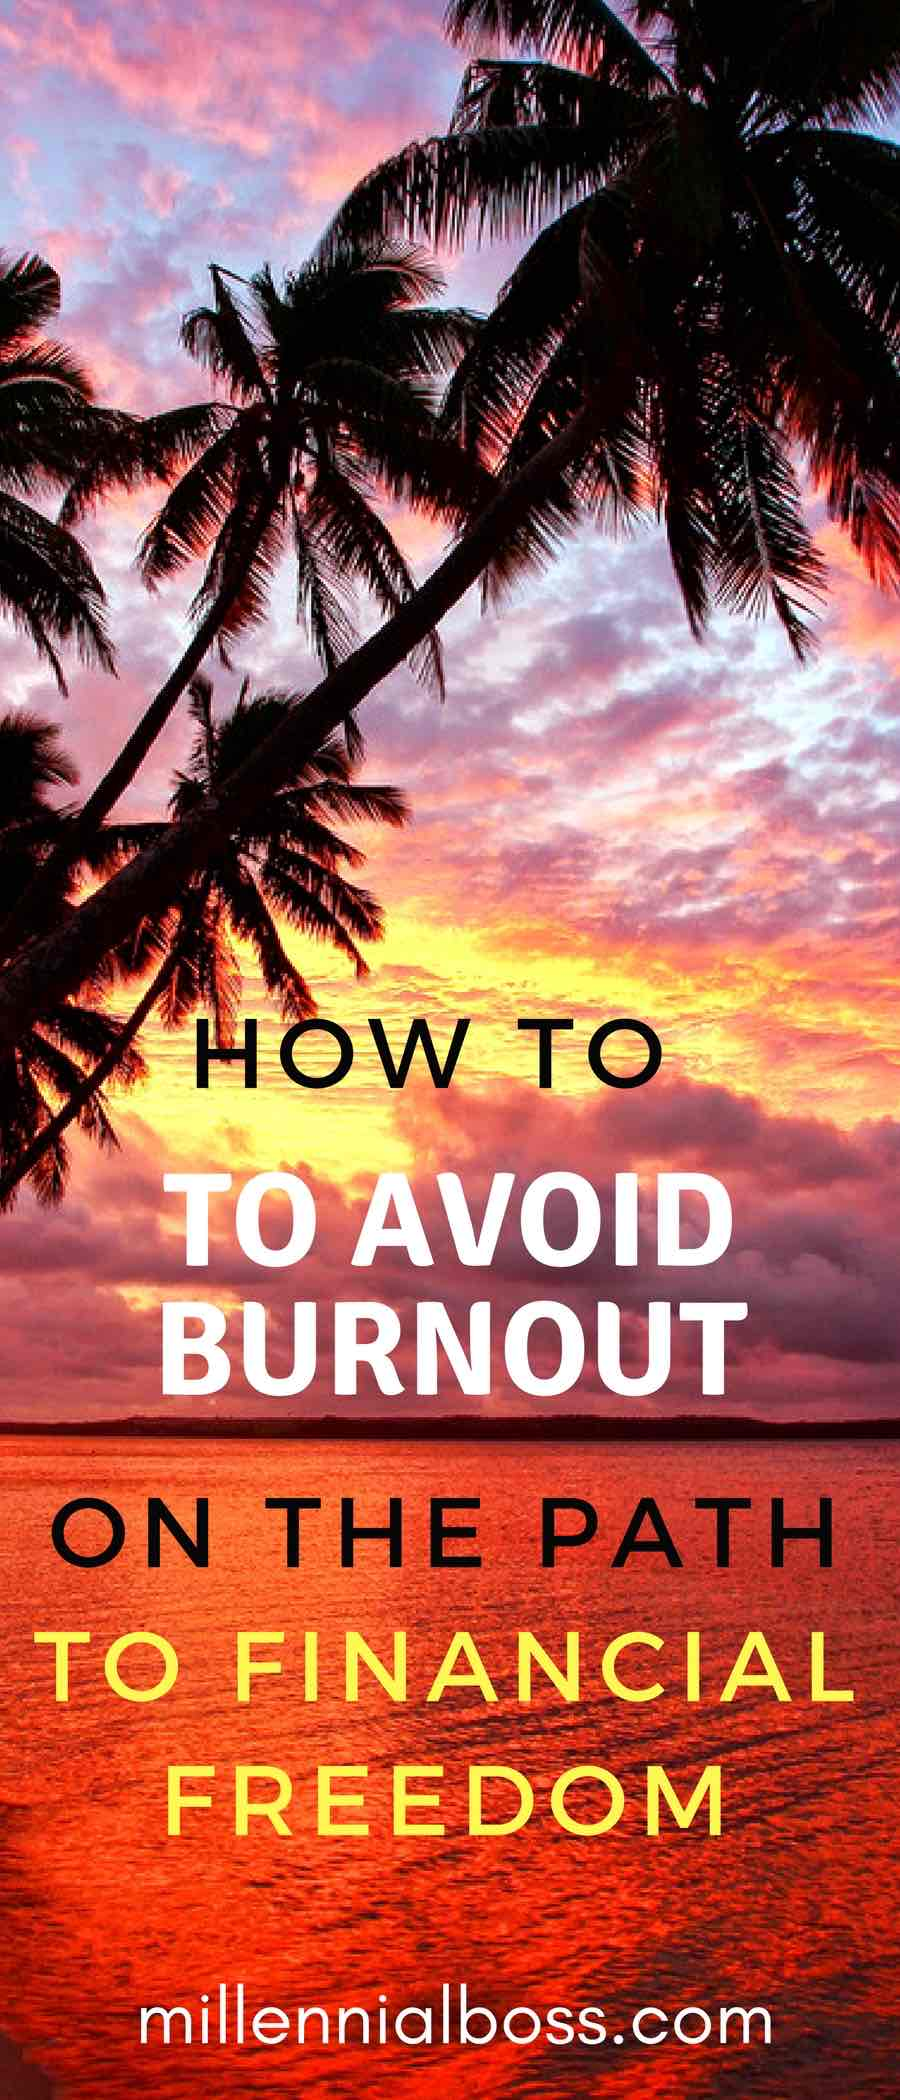 HOW CAN YOU AVOID BURNOUT ON THE PATH TO FINANCIAL FREEDOM? HOW CAN YOU FIND HAPPINESS WHILE SAVING? THE HAPPY PHILOSOPHER SHARES HIS TIPS FOR AVOIDING BURNOUT.